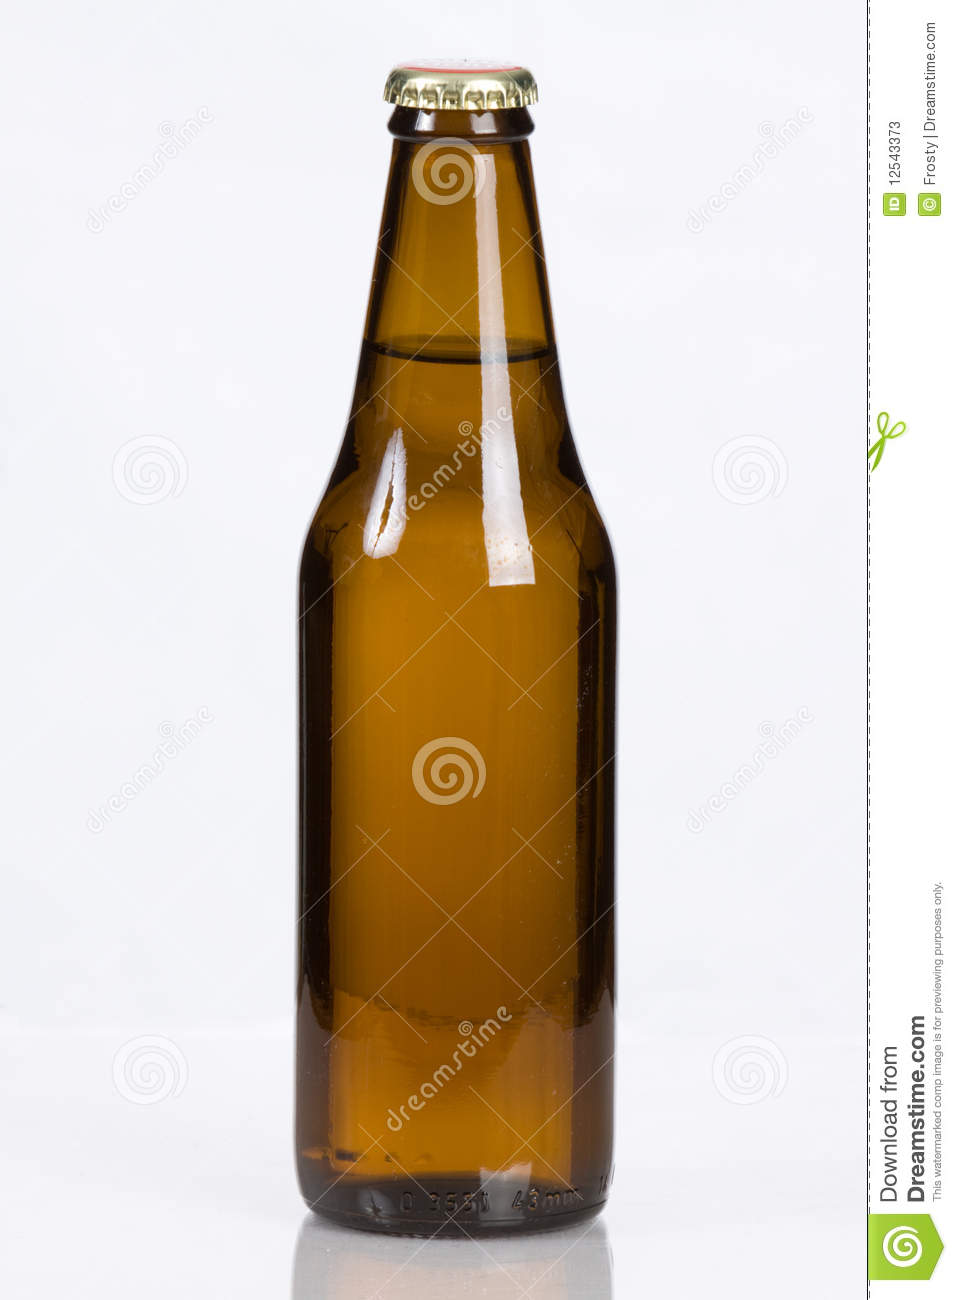 More similar stock images of classic plain brown glass beer bottle